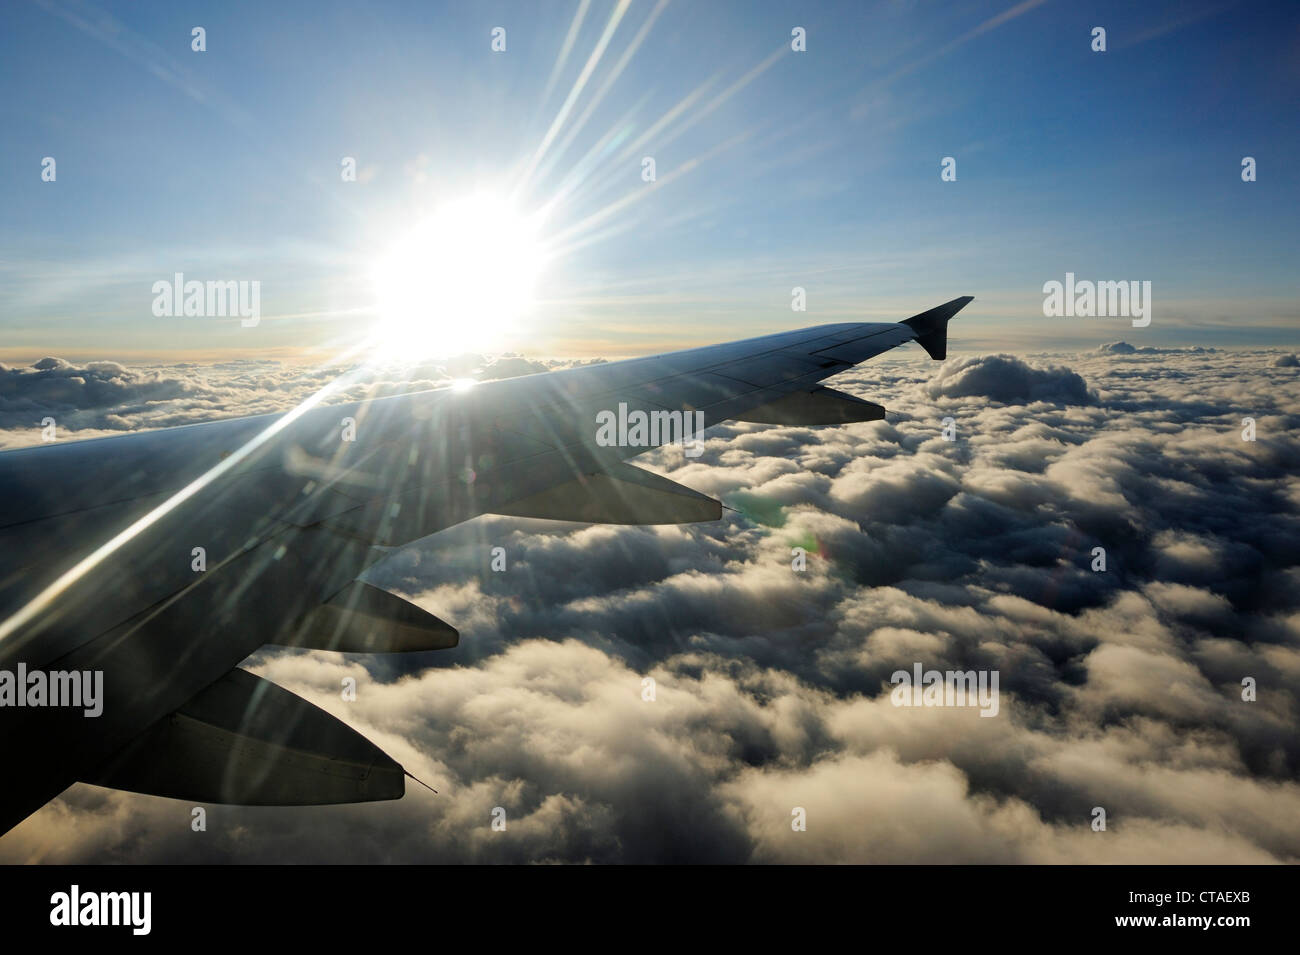 Sun above clouds with wing of airplane, flight from Delhi to Leh, Ladakh, Jammu and Kashmir, India - Stock Image